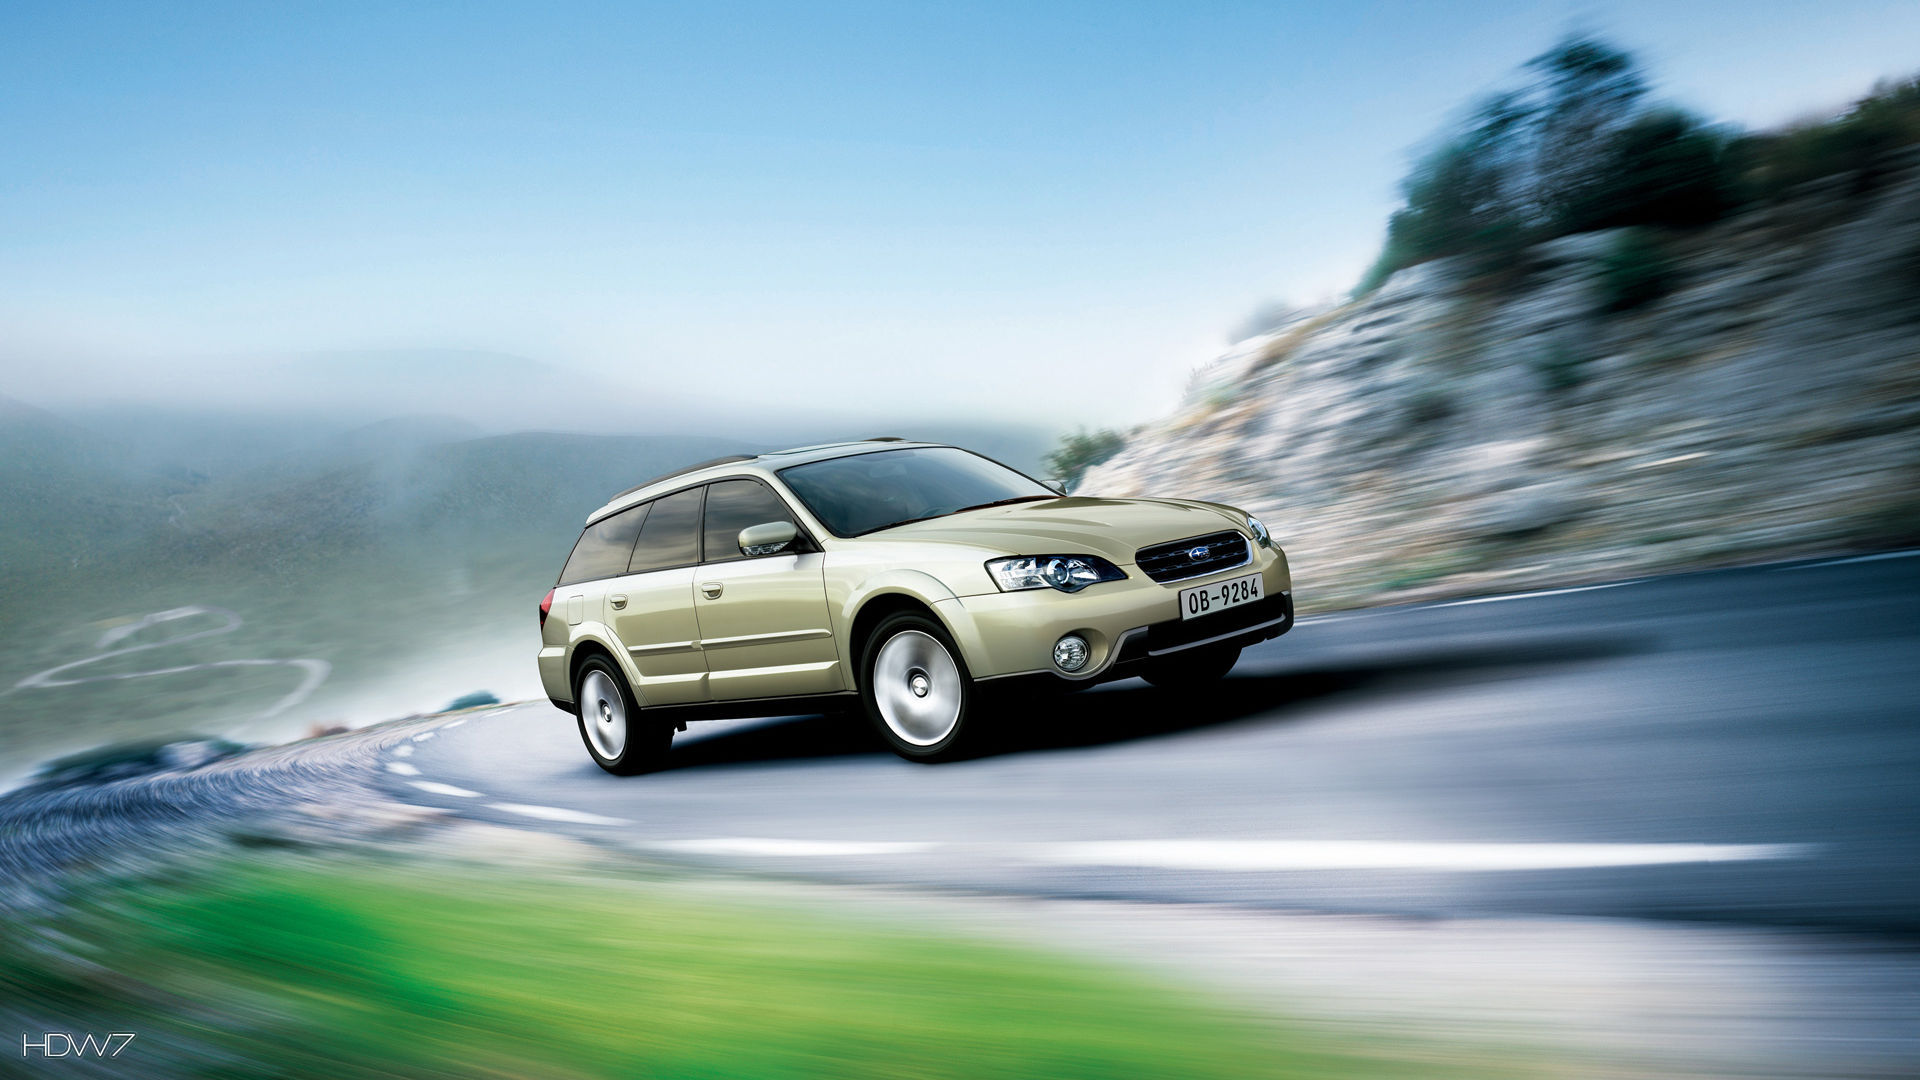 Subaru Outback 30r 2005 Car Hd Wallpaper